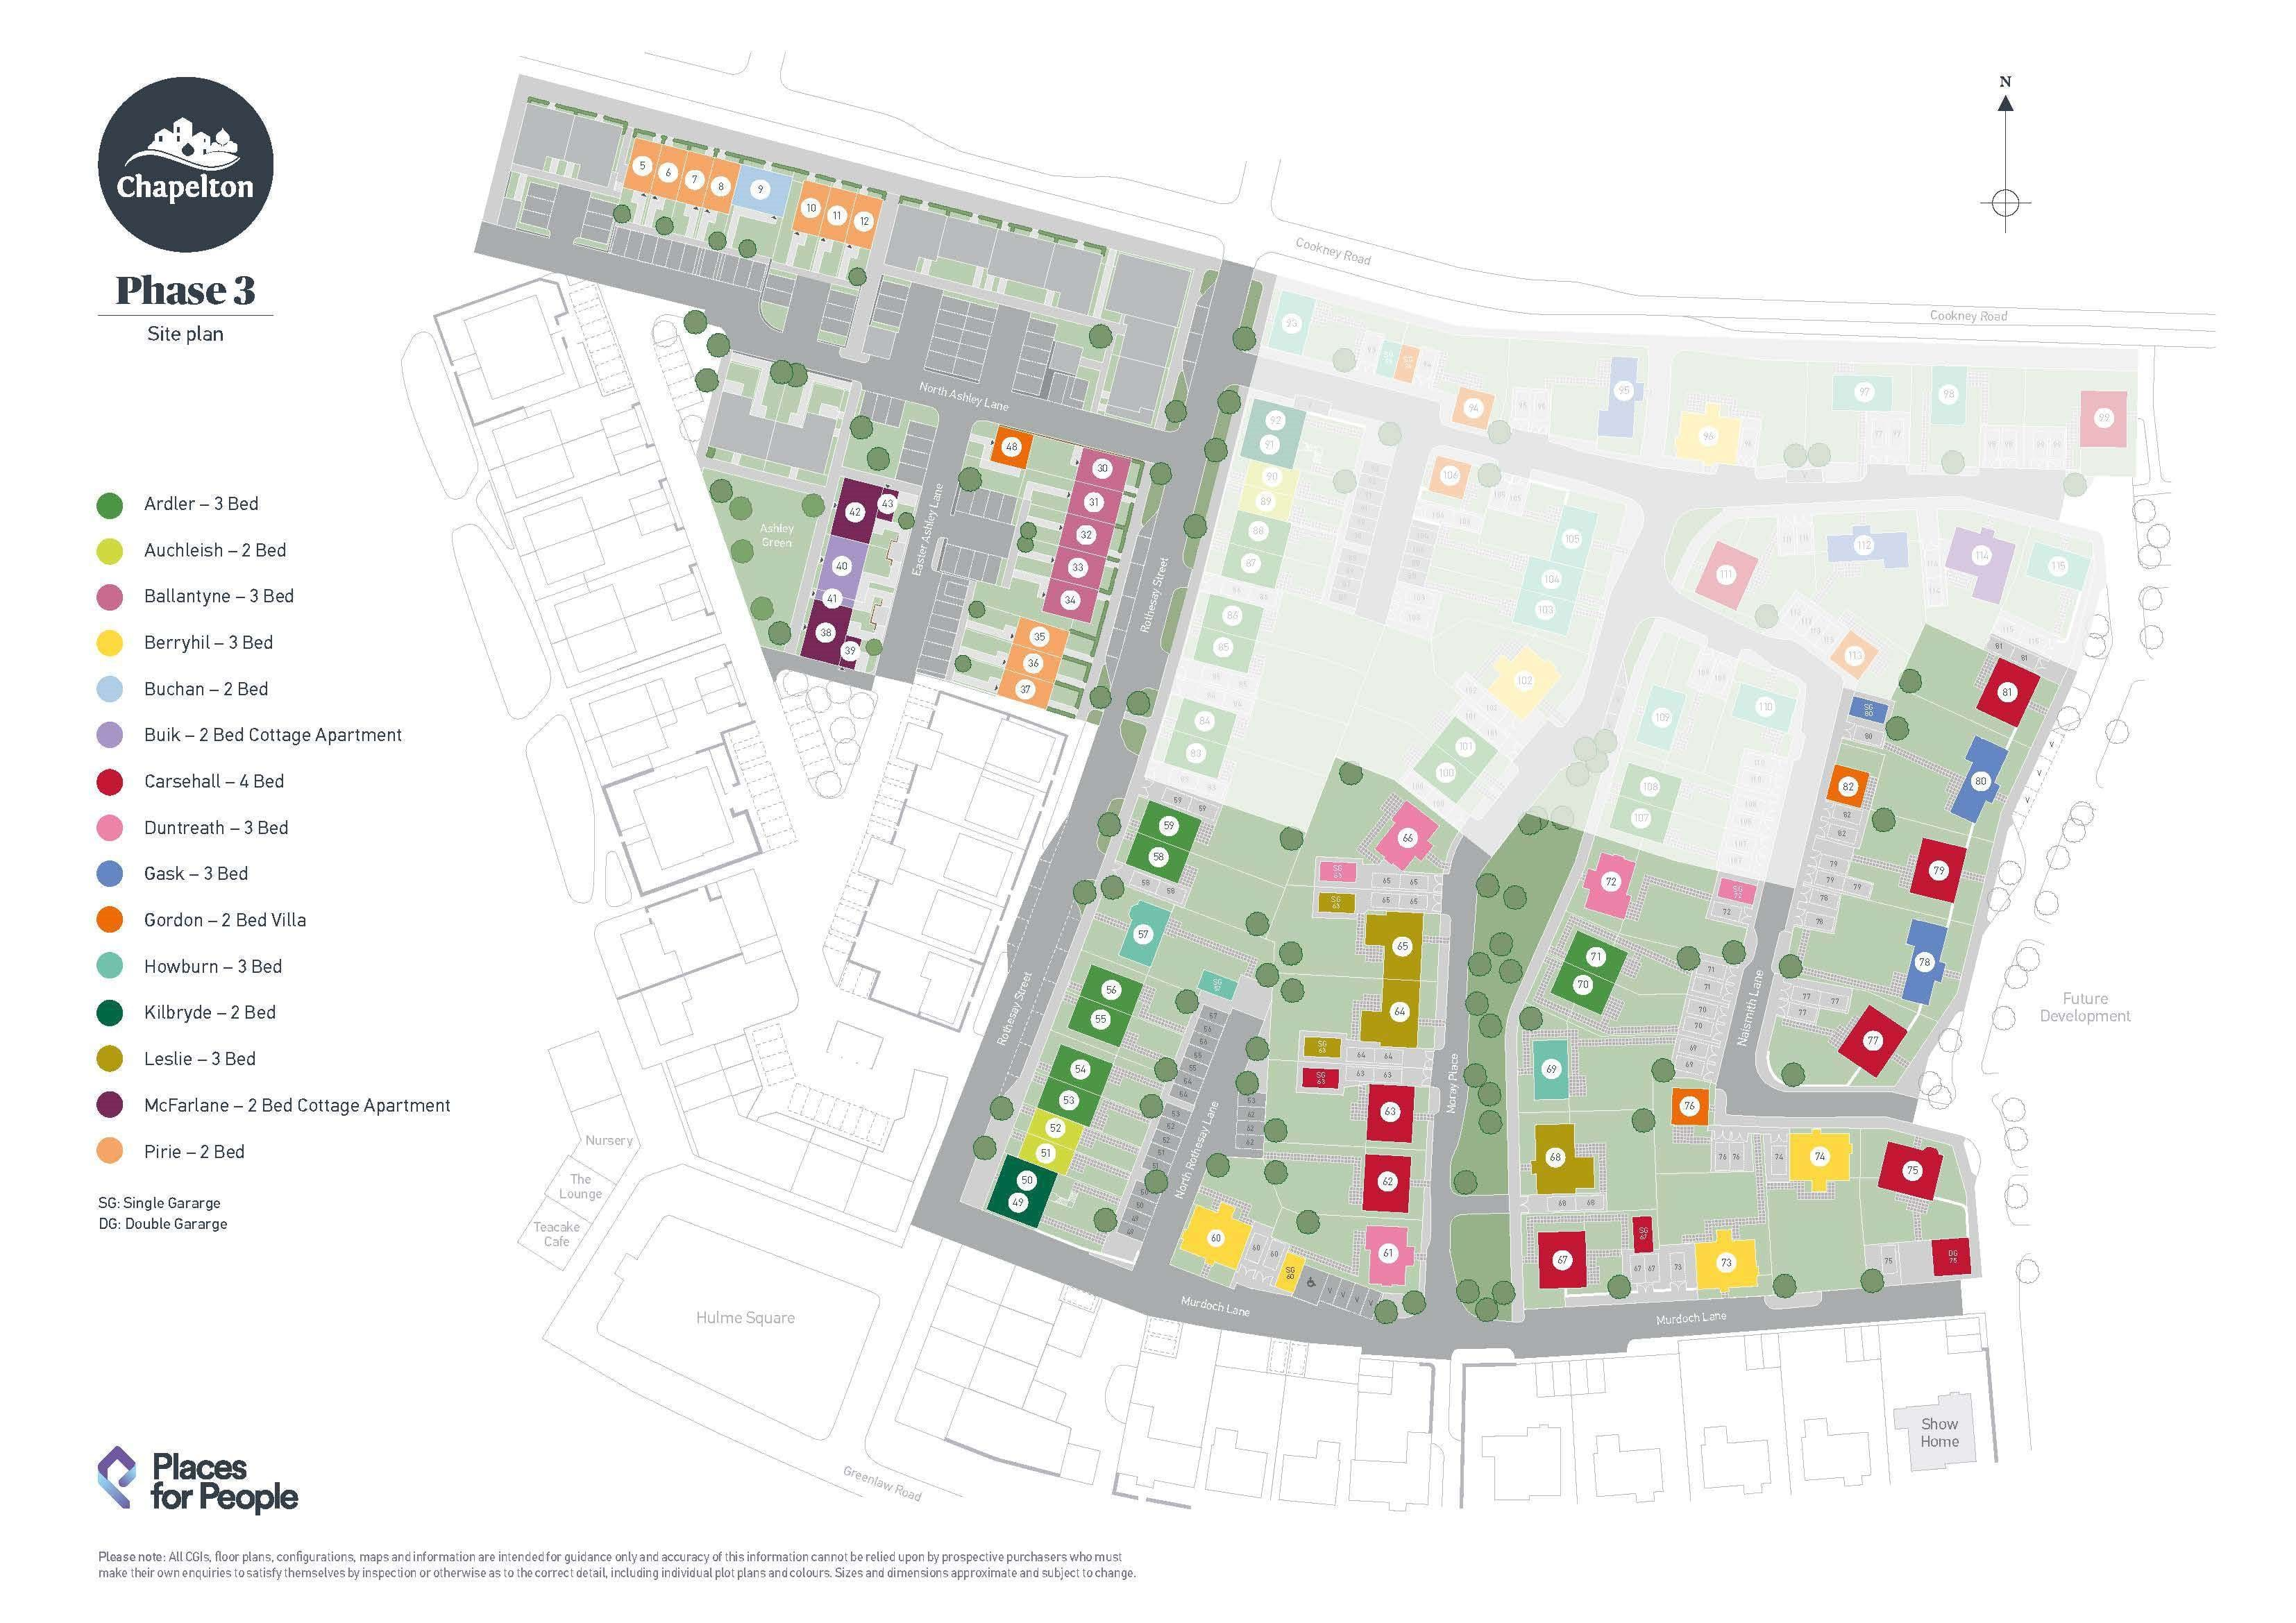 2386-chapelton-a3-site-plan-phase-3-september-2020-aw.jpg